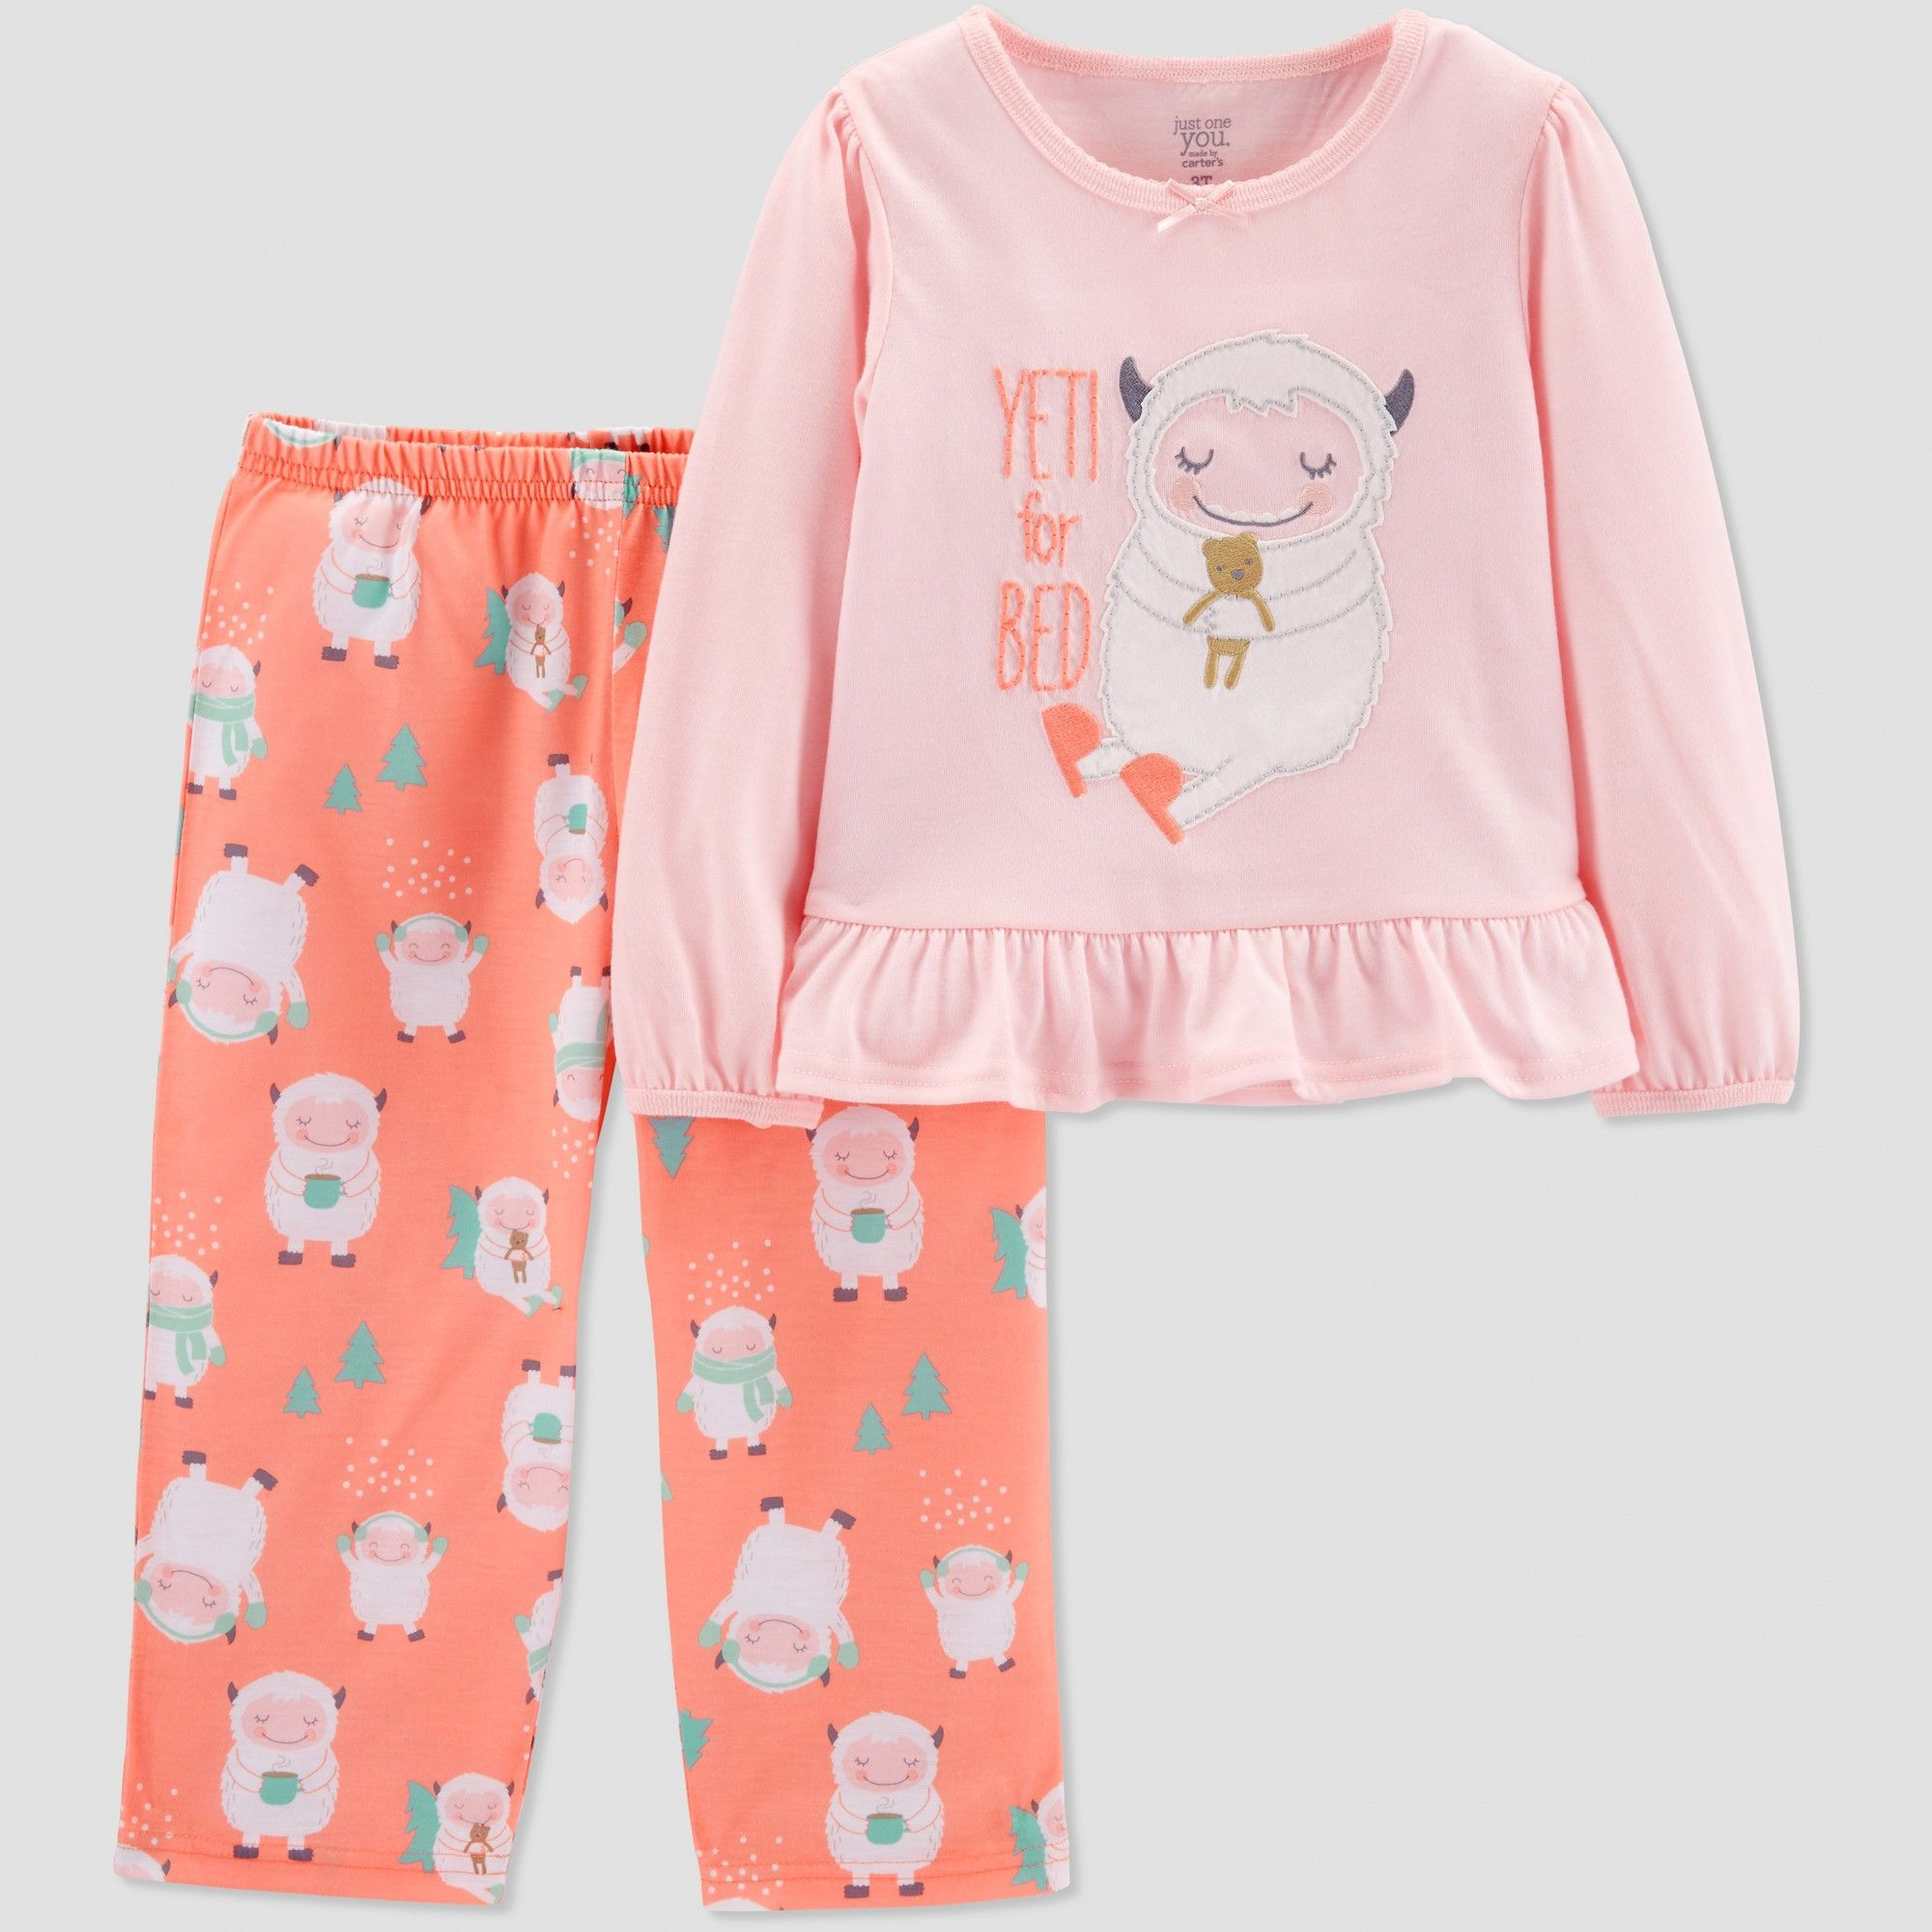 21450c75ee Baby Girls  Yeti 2pc Pajama Set - Just One You made by carter s Coral 18M